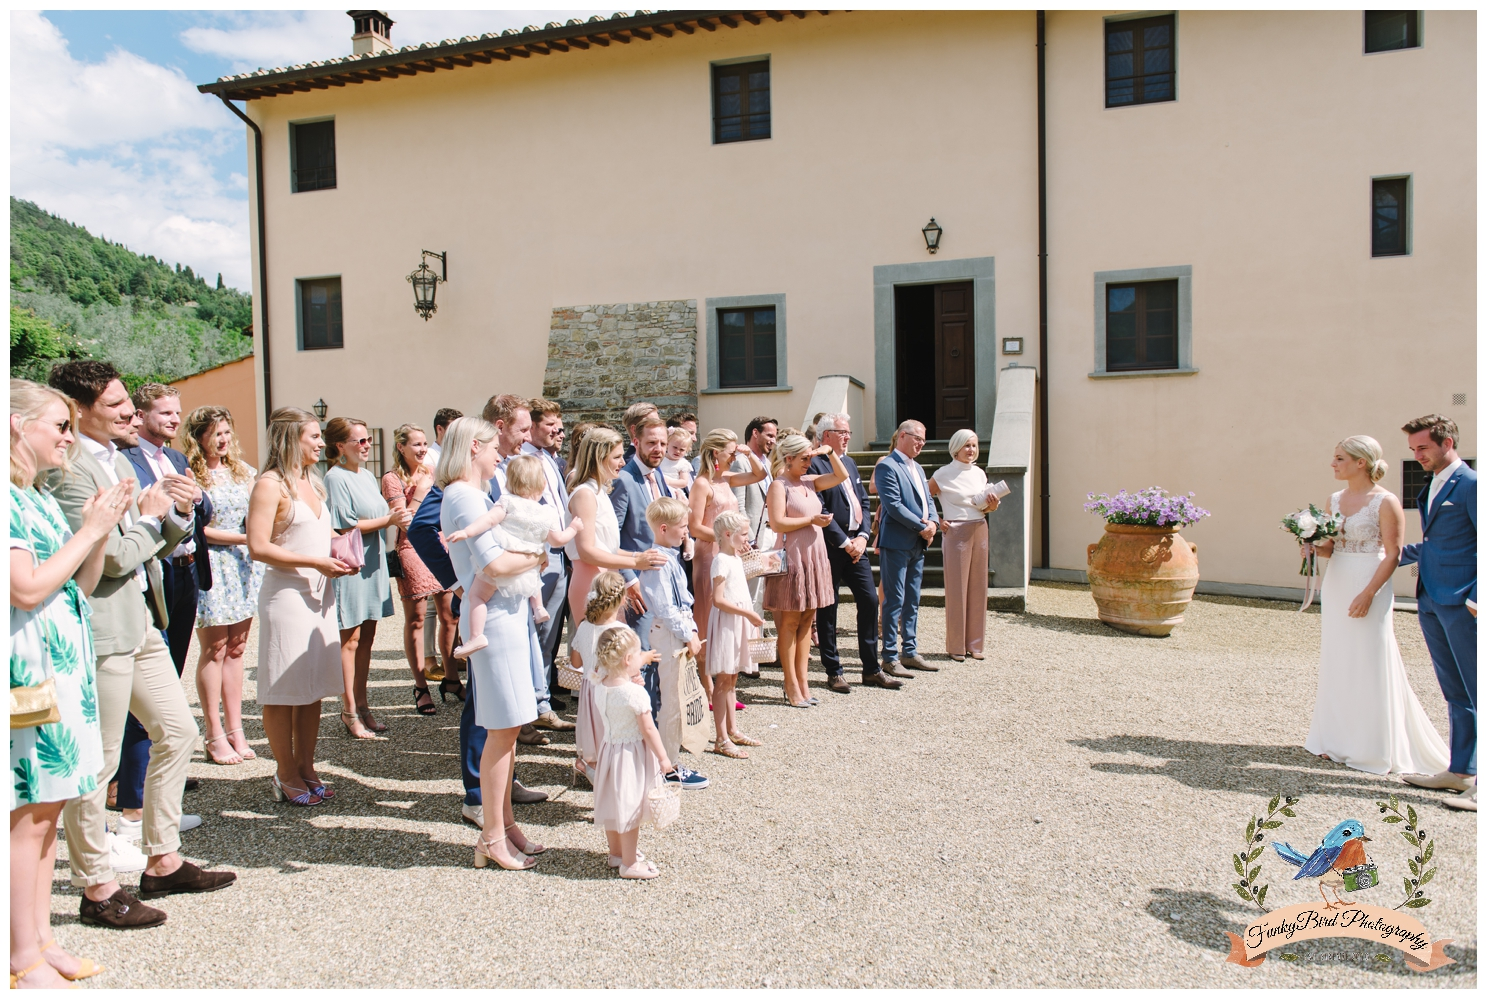 Wedding_Photographer_Tuscany_Italy_0027.jpg